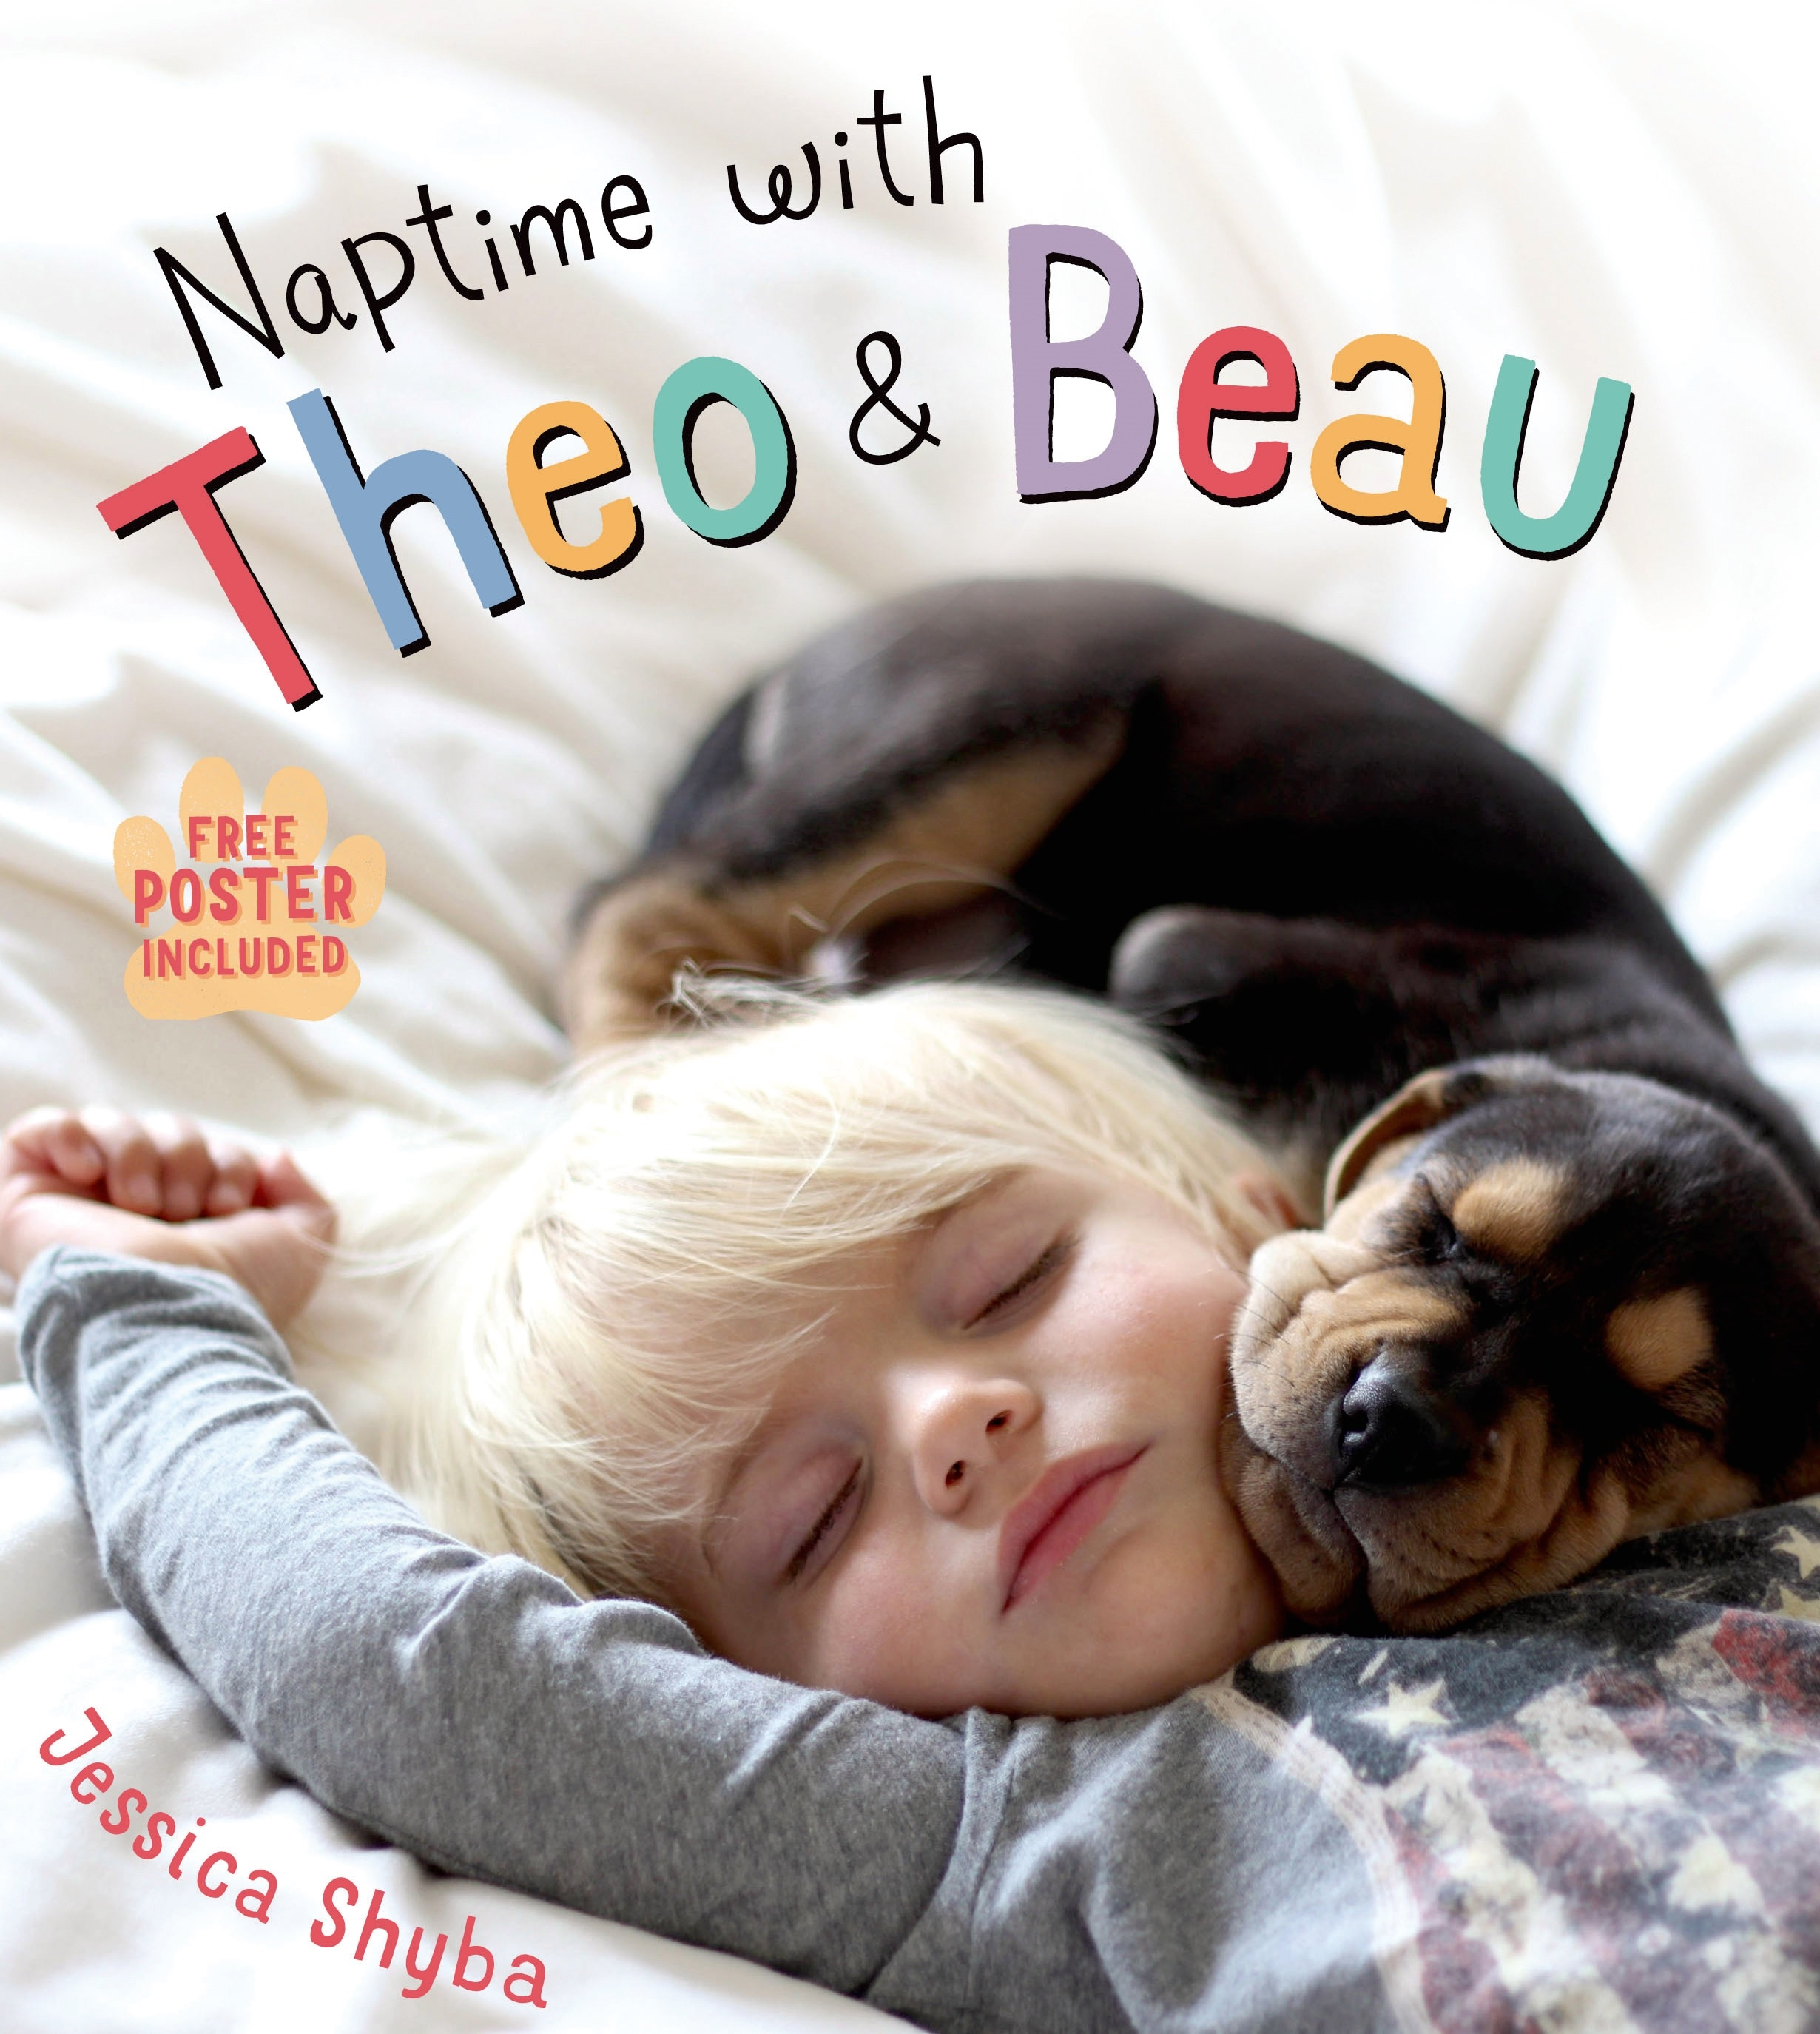 Naptime with Theo and Beau : with Free Poster Included